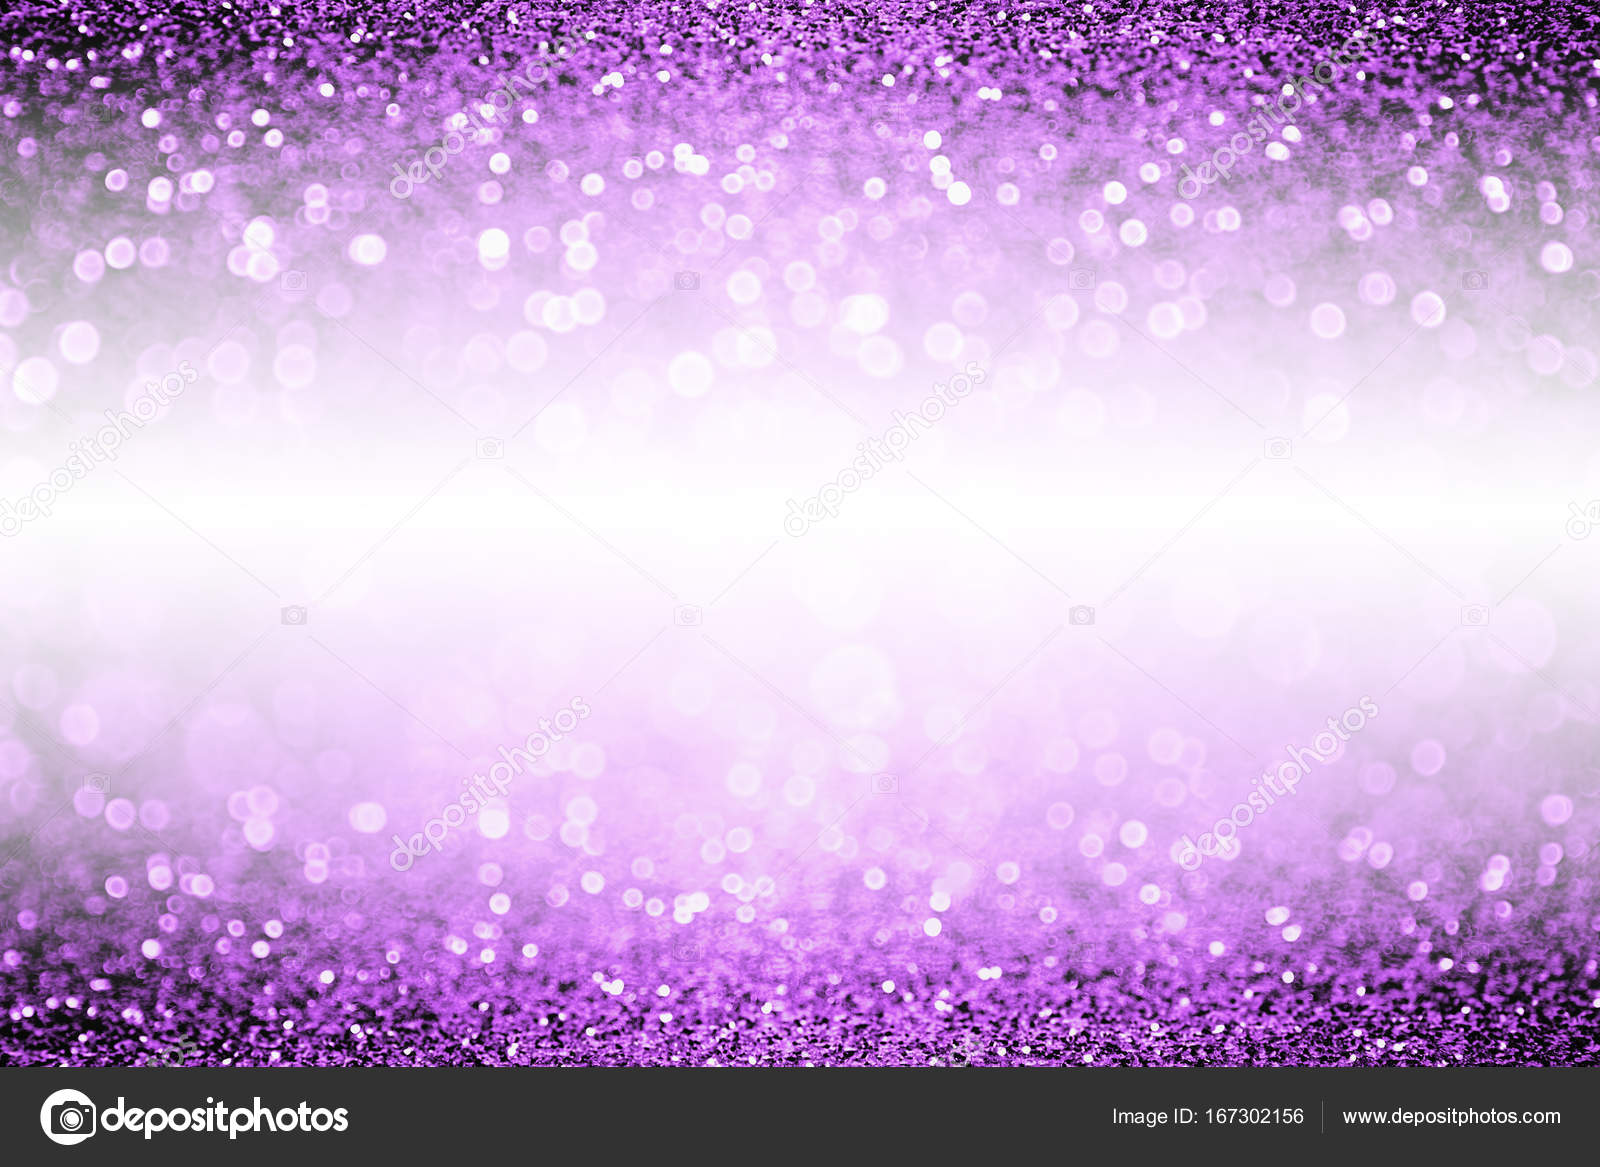 purple halloween background dance party sparkle backdrop